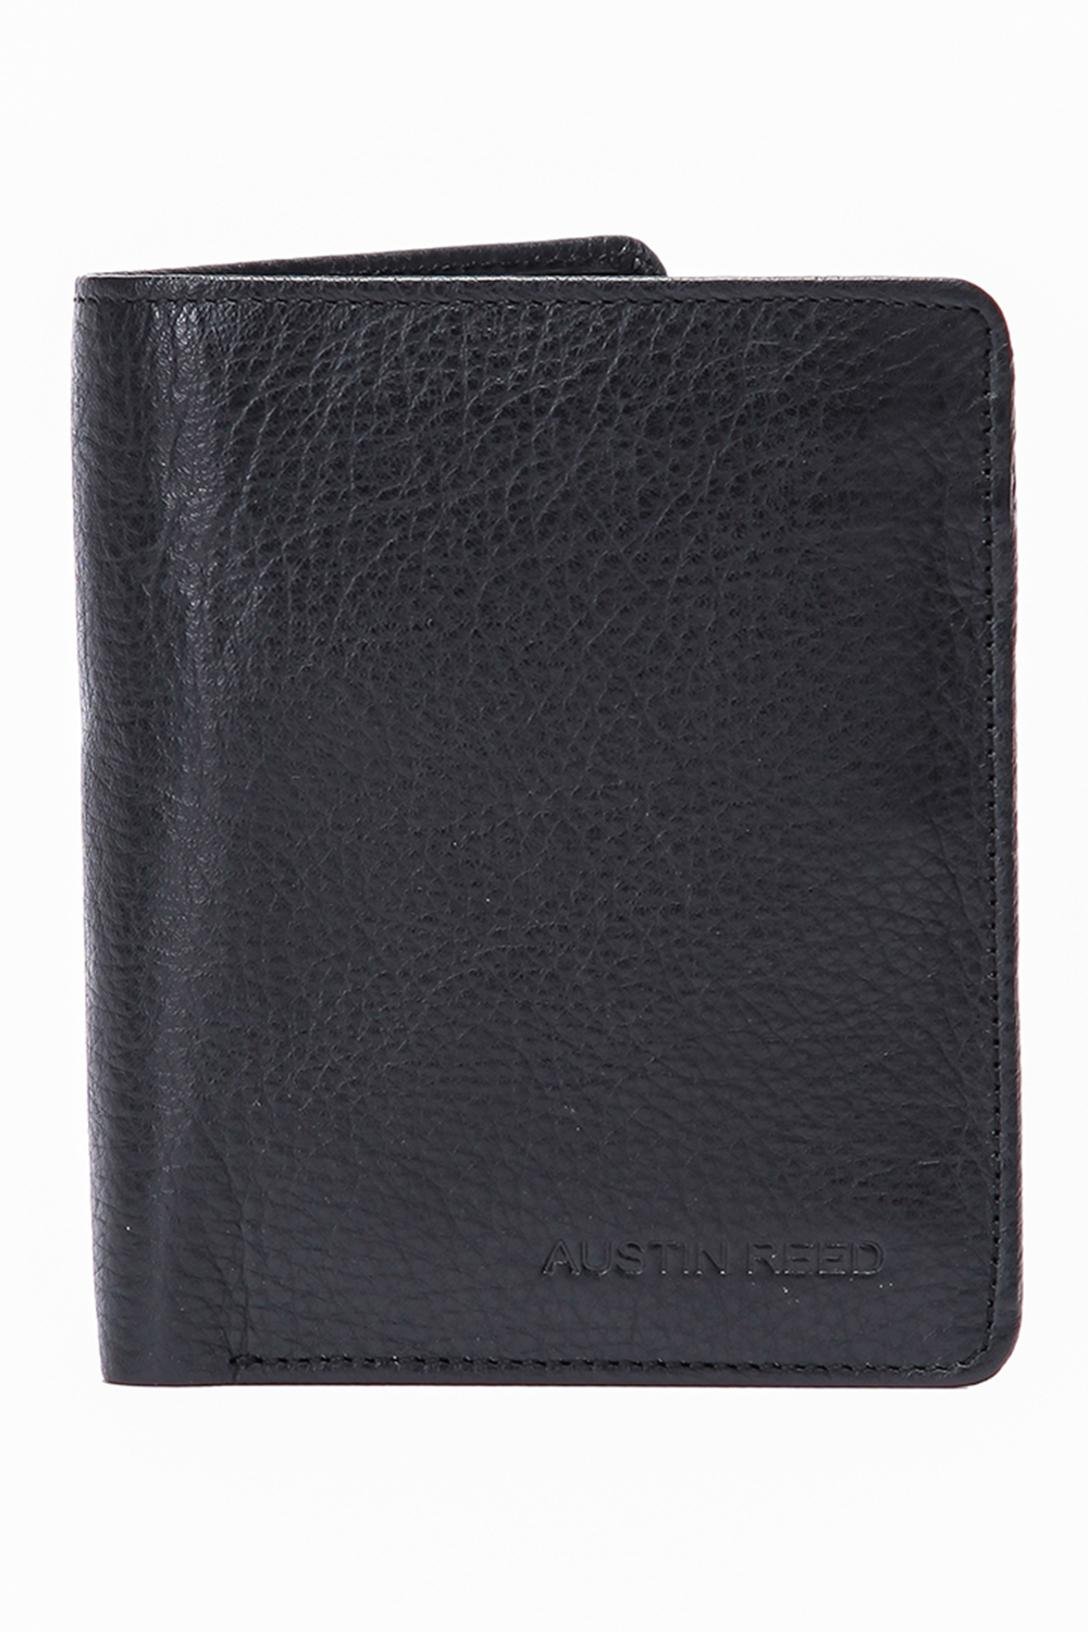 Buy Austin Reed Austin Reed Mens Wallet Shoppers Stop